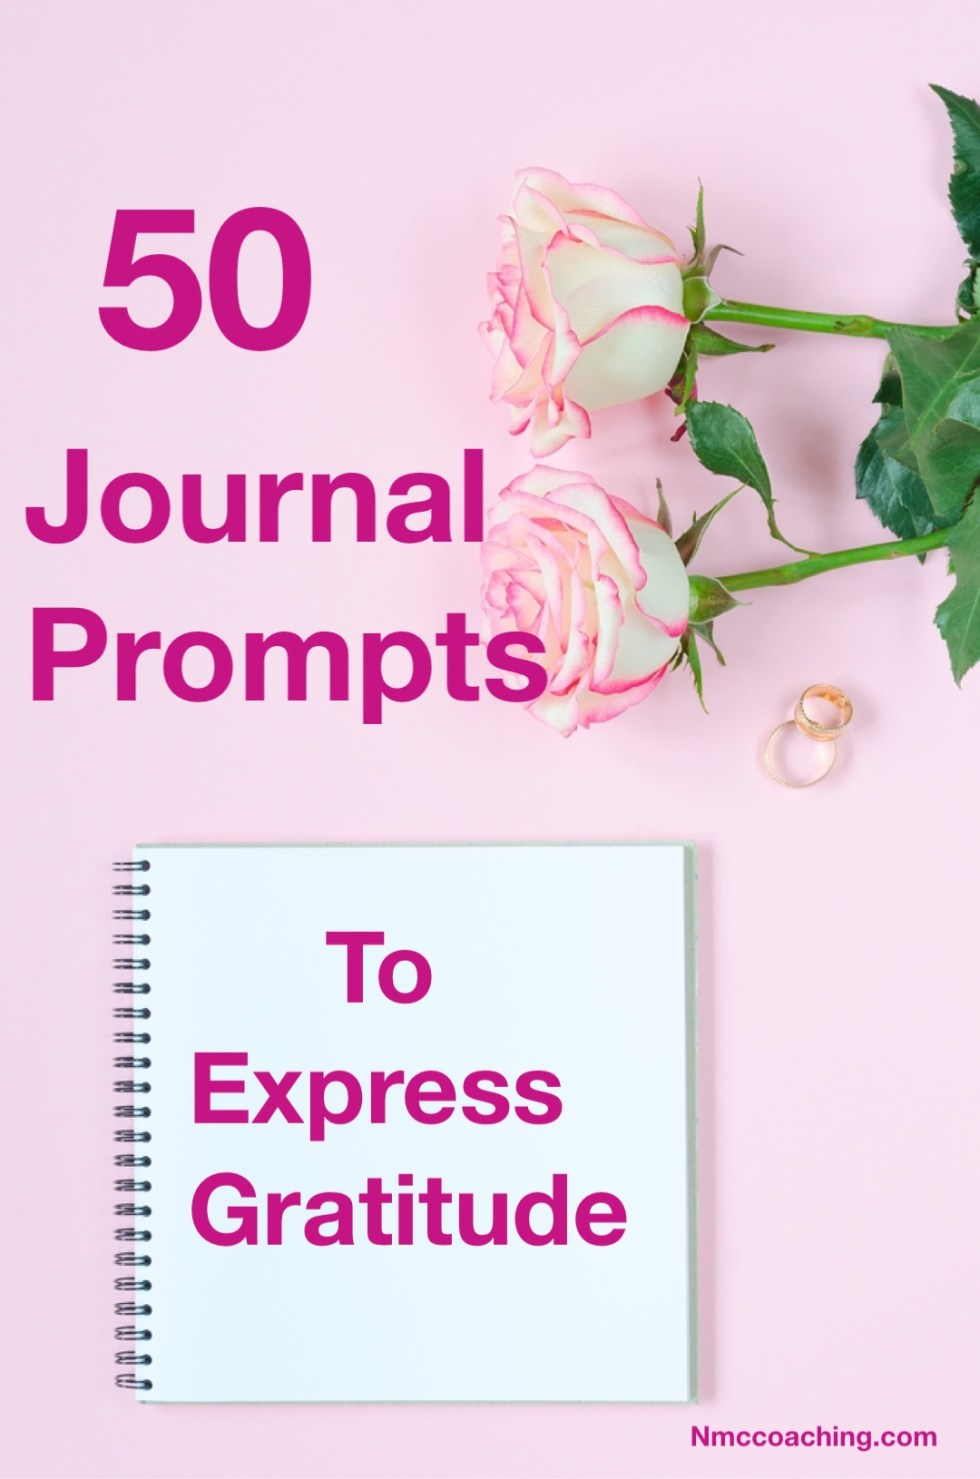 50 Journal Prompts to Express Gratitude